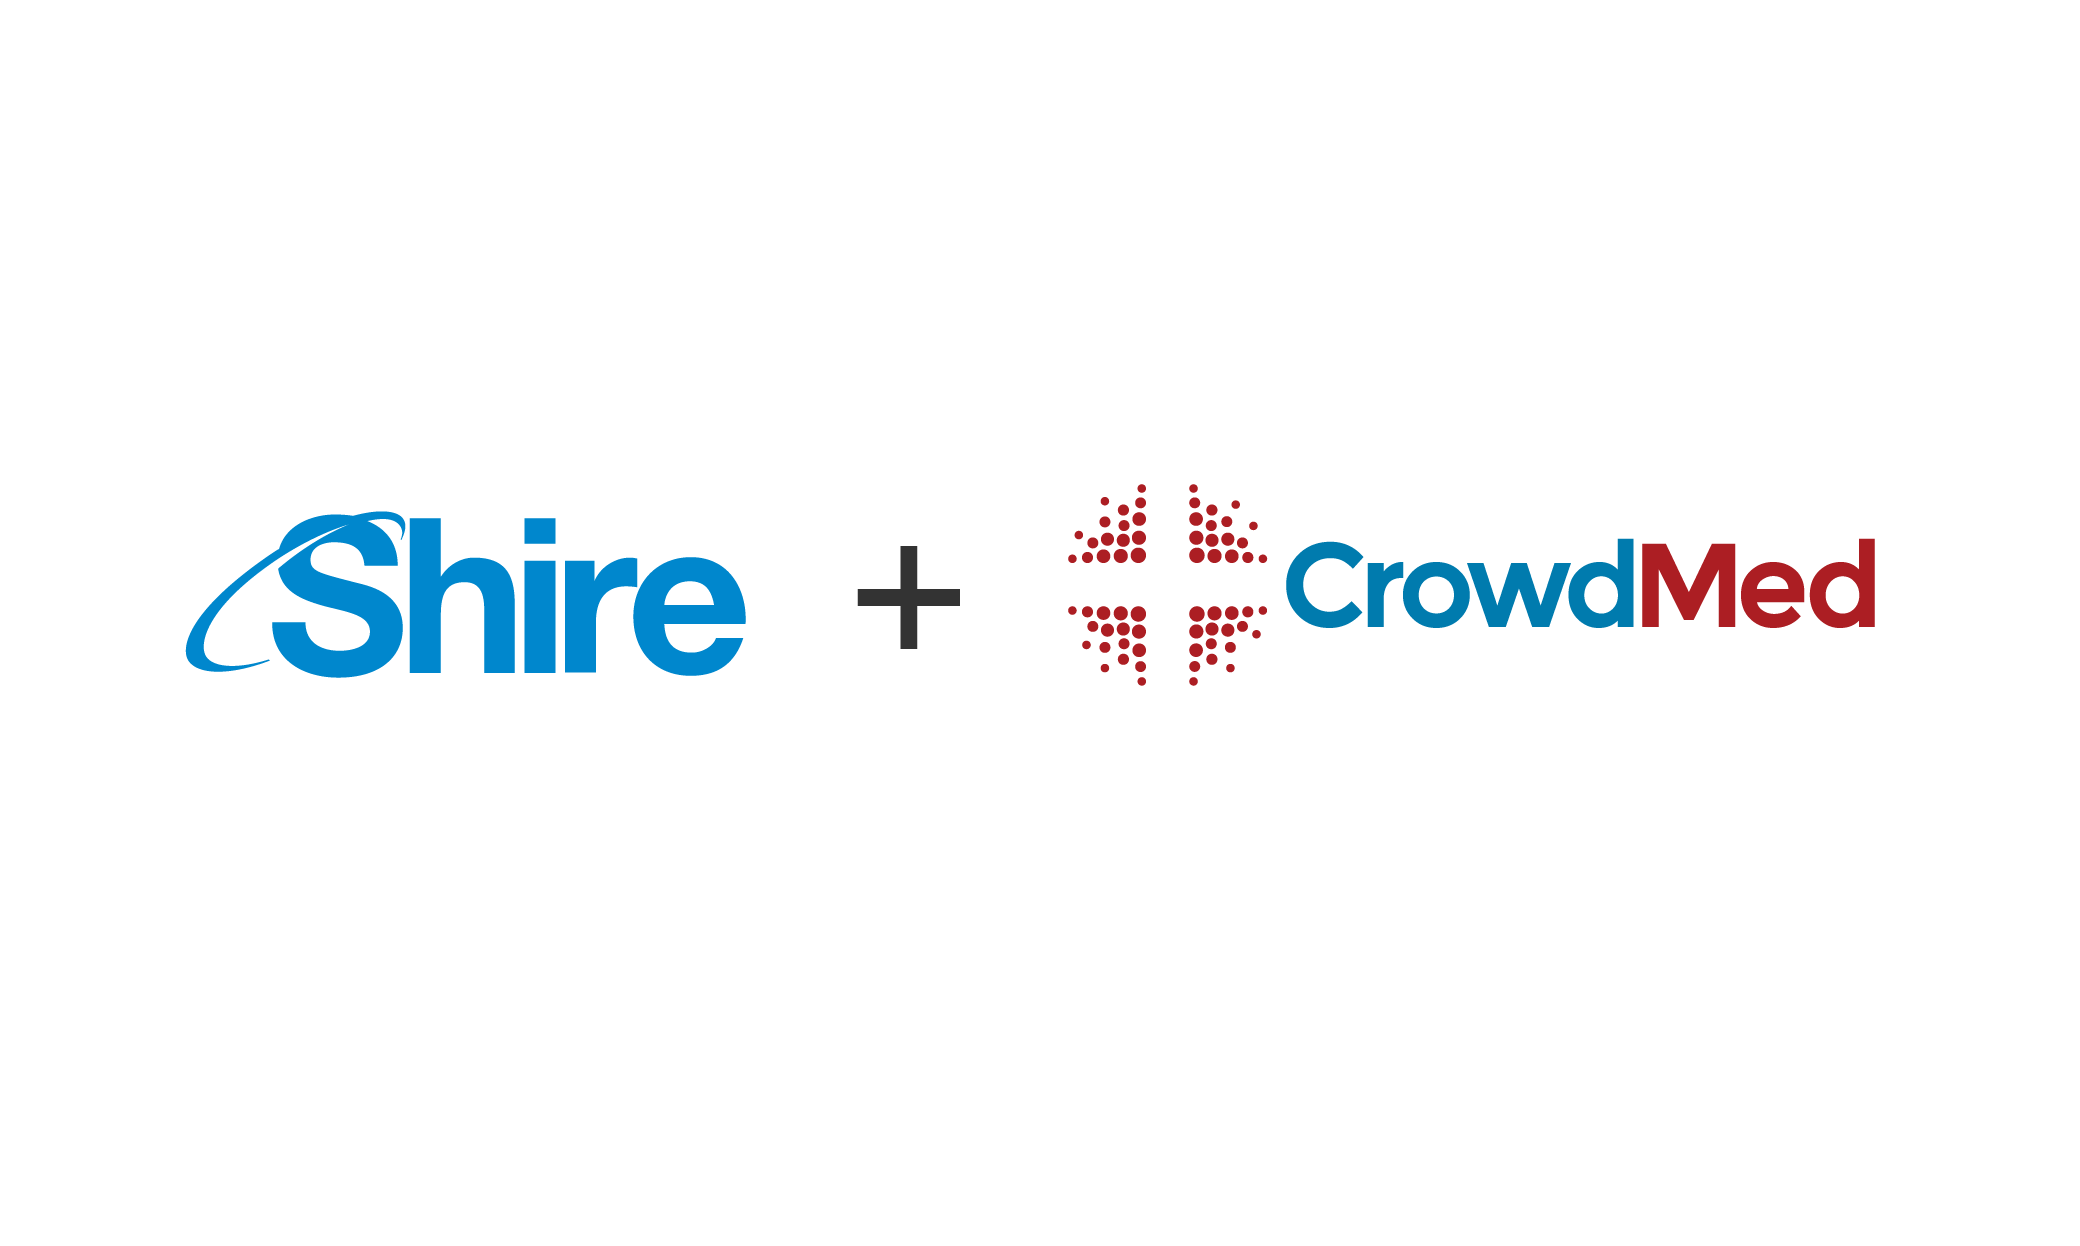 CrowdMed partners with Shire